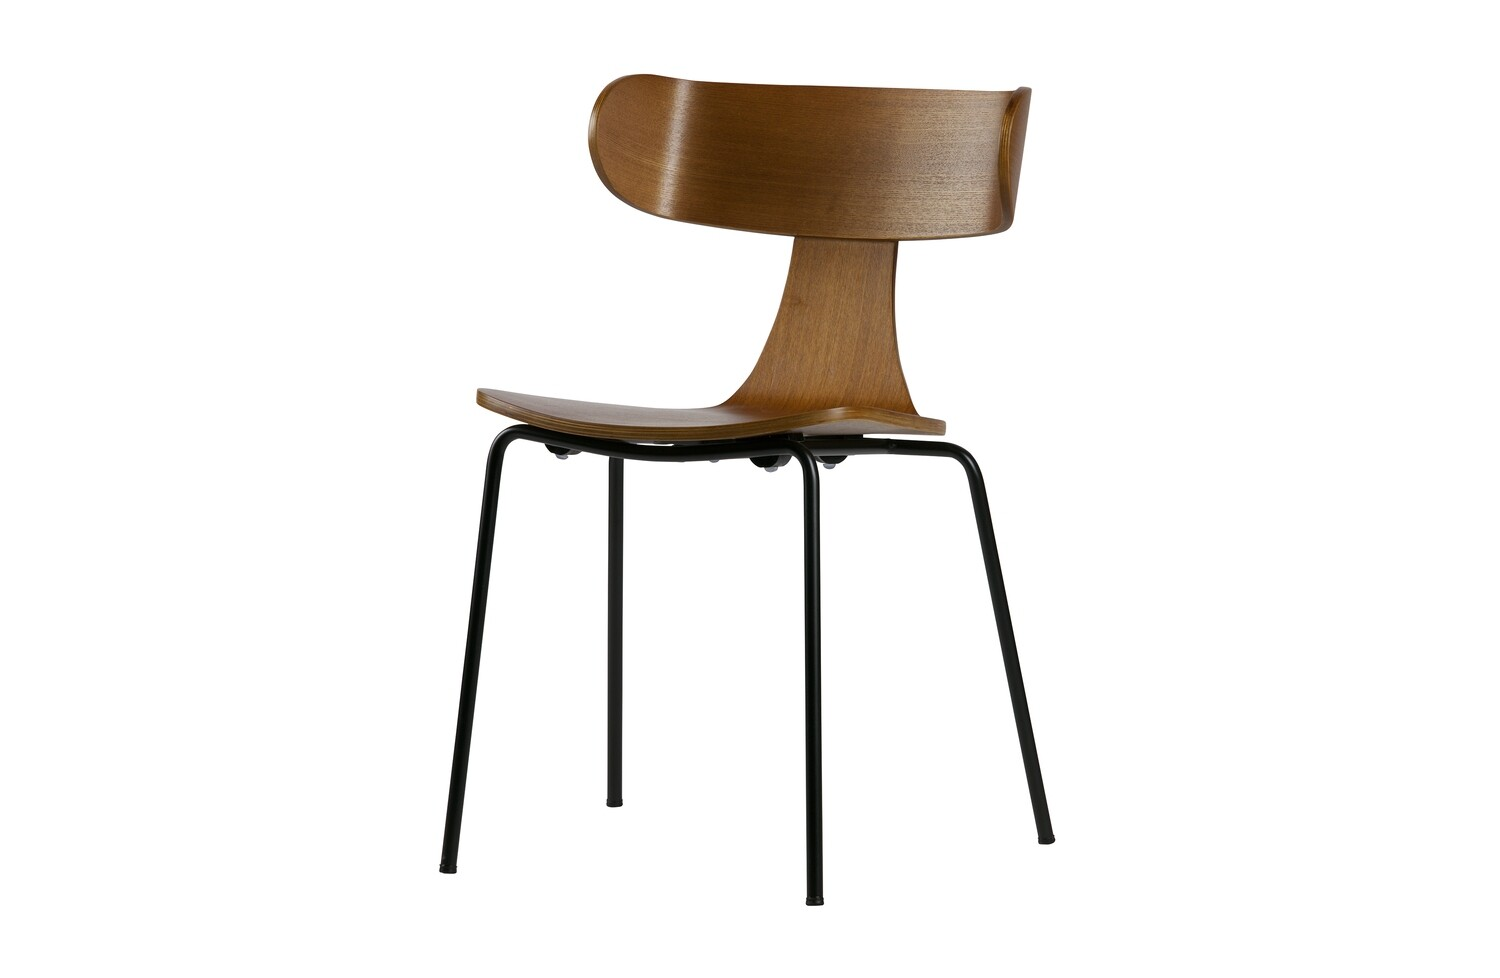 Form wooden chair